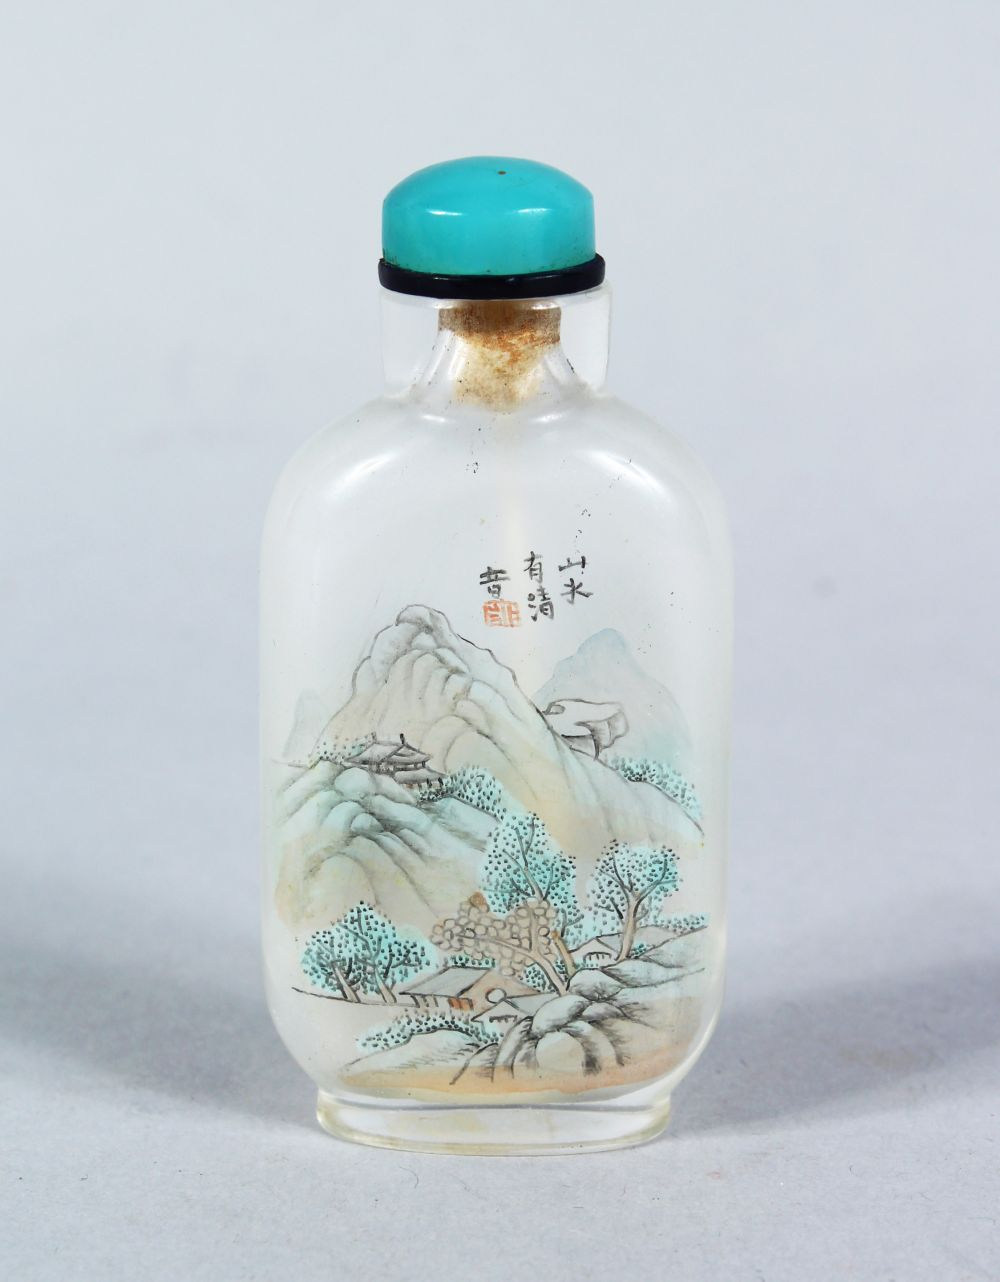 A GOOD 19TH / 20TH CENTURY CHINESE REVERSE PAINTED GLASS SNUFF BOTTLE, the body decorated with two